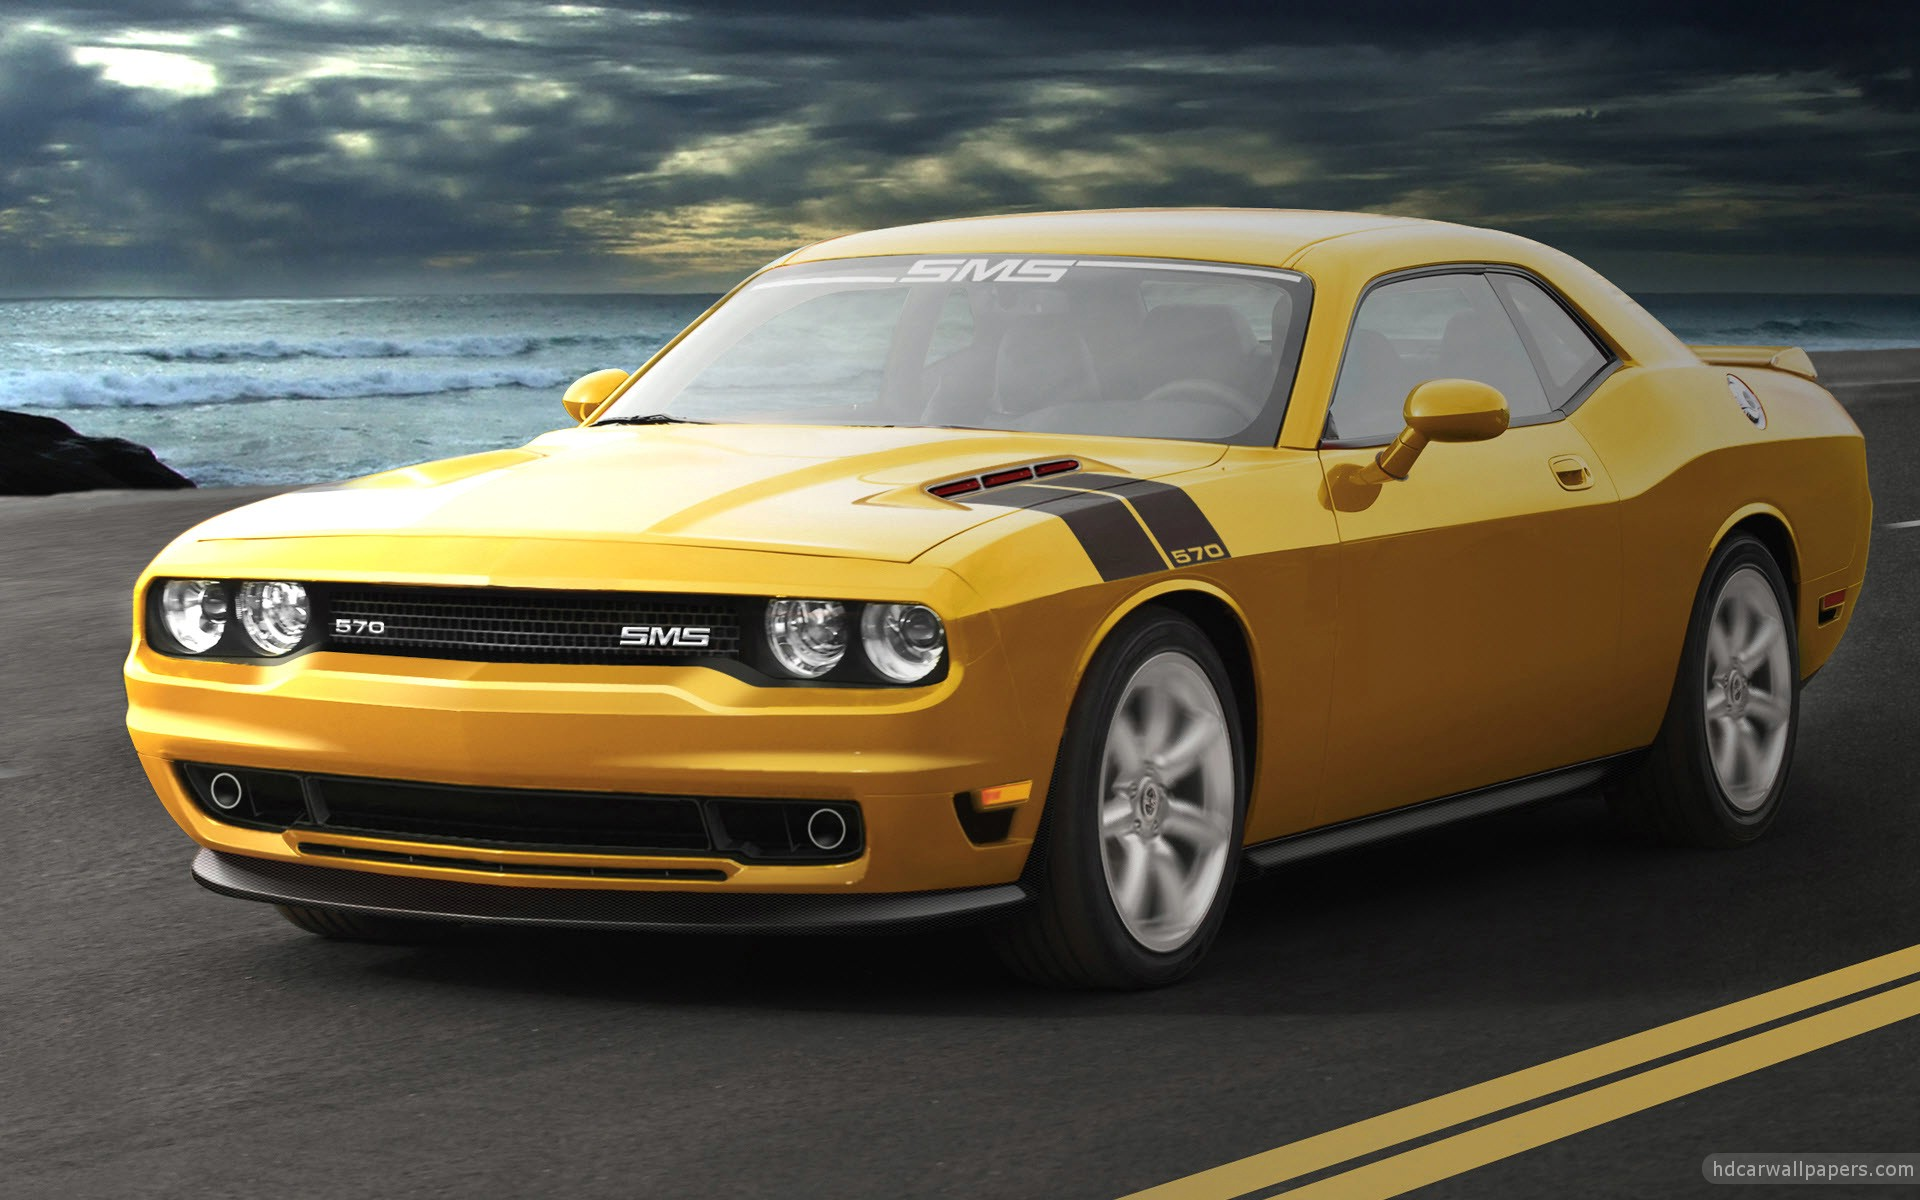 1920x1200 - Dodge Challenger Rallye Wallpapers 15